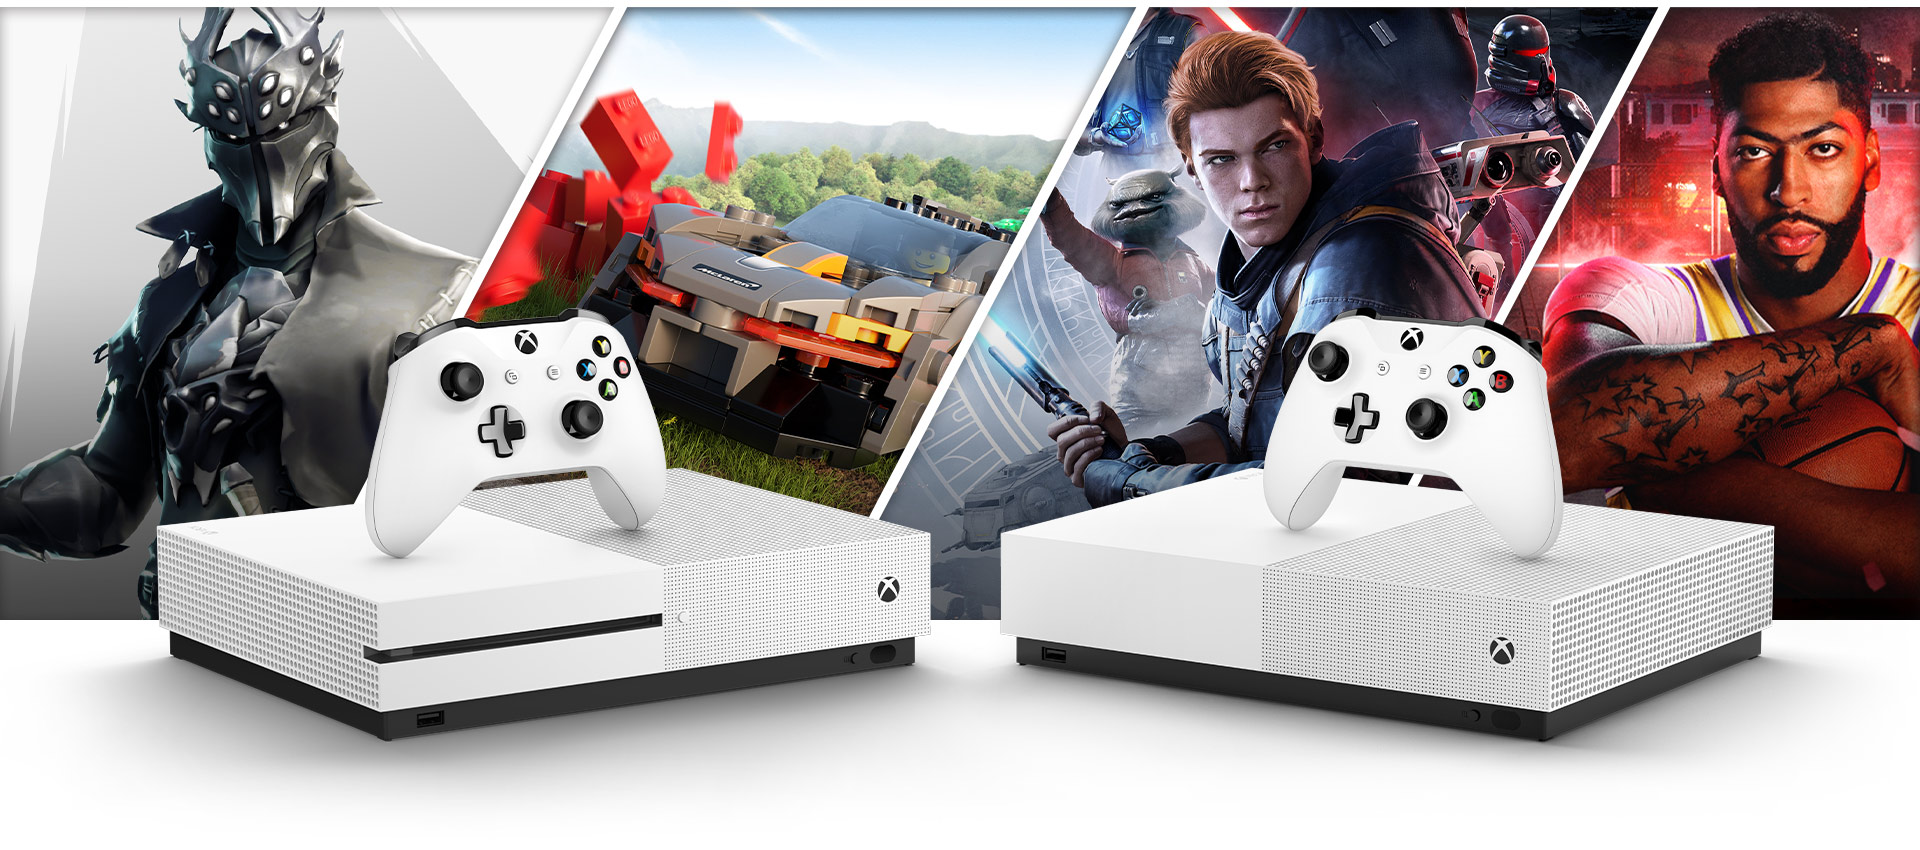 Grafik fra Fortnite, Forza Horizon 4, Star Wars Jedi Fallen Order og NBA 2K20 bag en Xbox One S og Xbox One S All Digital Edition